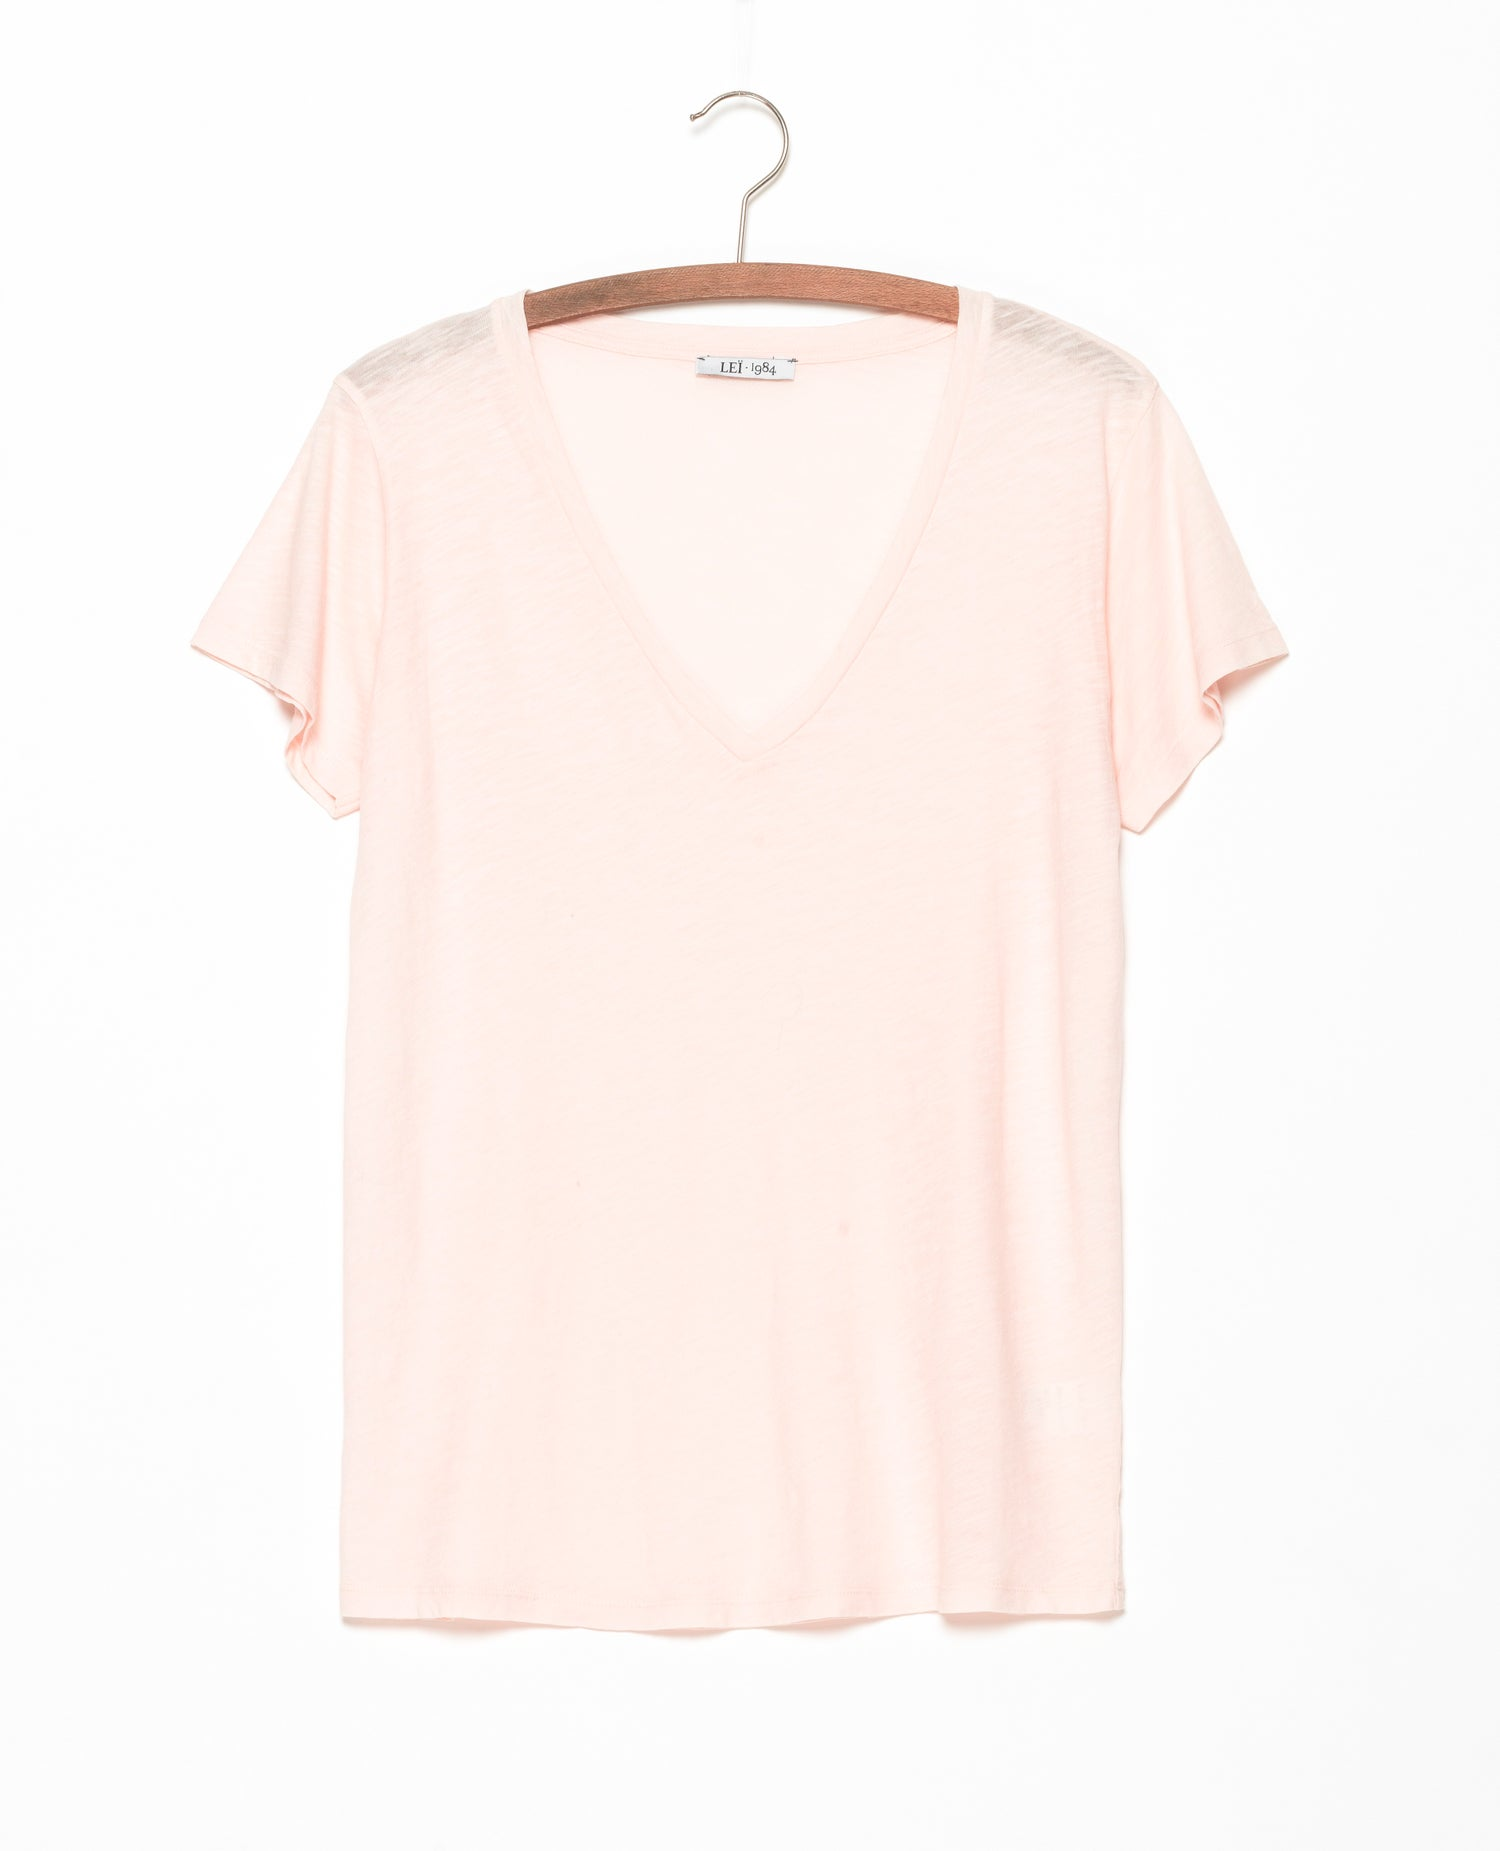 Image of Tee-shirt flamé CERISE BIS coloris pastels 45€ -50%